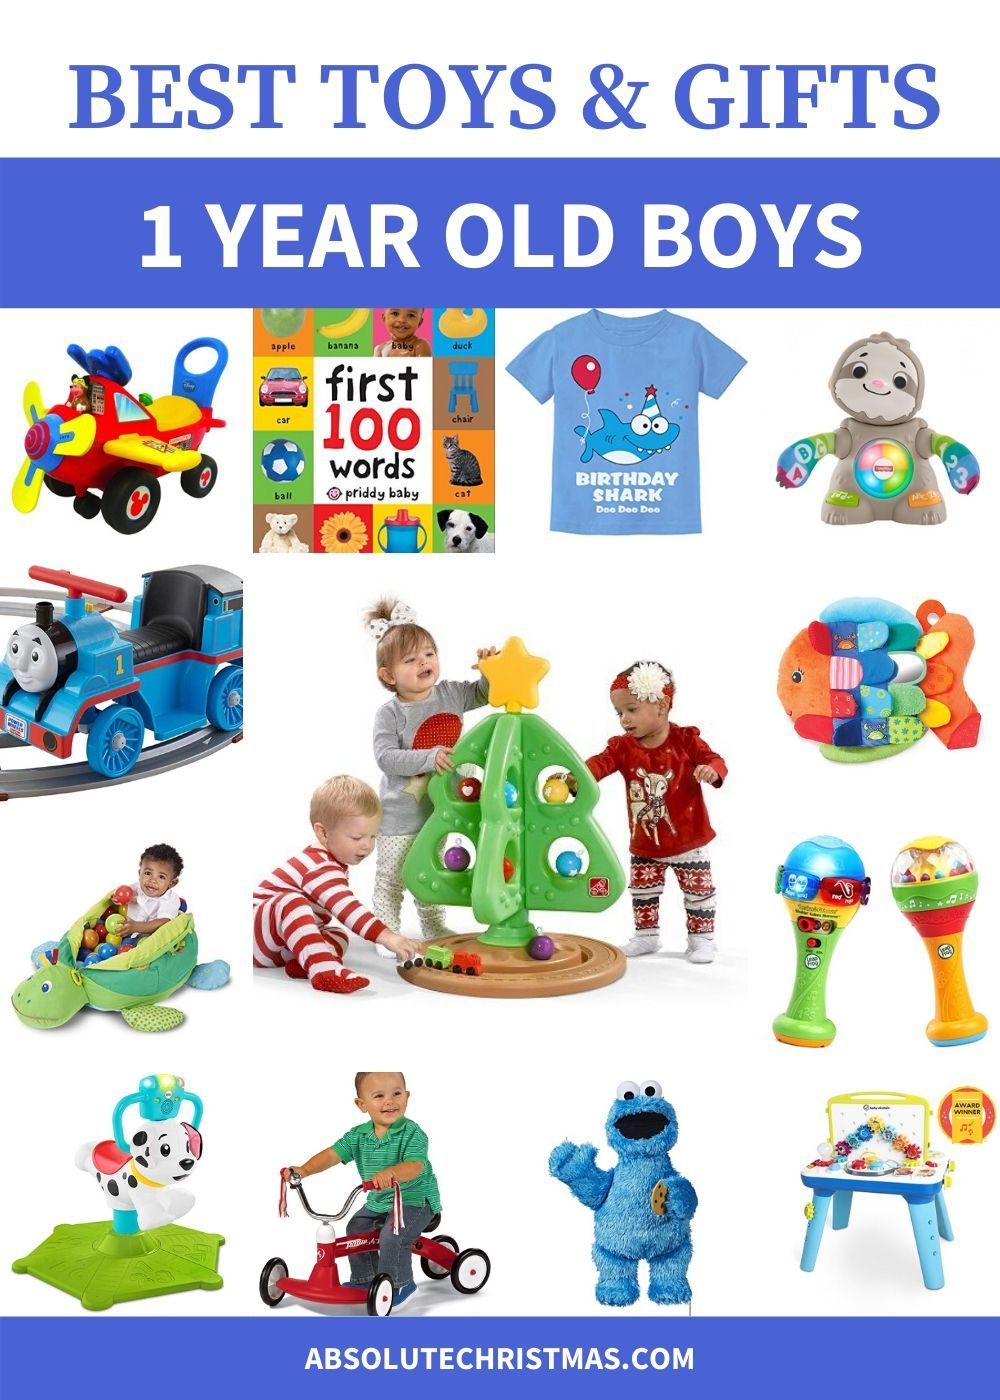 31 best gifts for 1 year old boys 2020 absolute